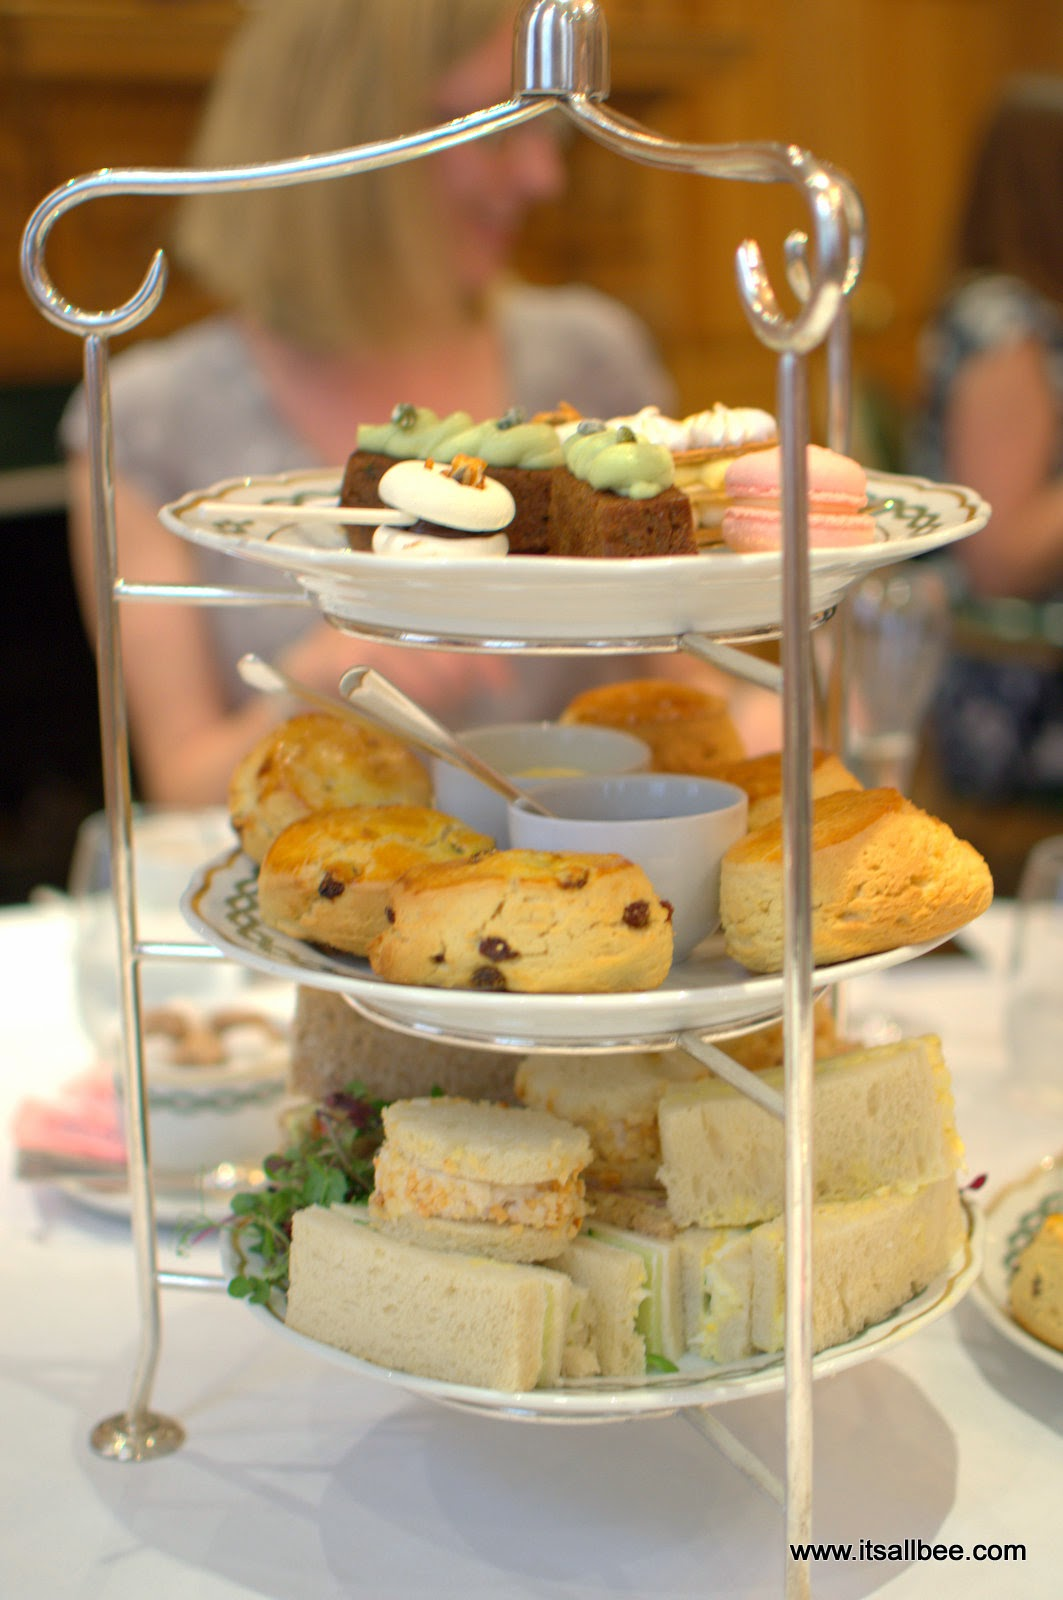 Affordable afternoon tea in london - Top 10 deliciously cheap afternoon tea in London that will not break the bank! From afternoon tea on a boat where you cruise and see London sights to the tasty delights you can woof down in London's coolest hotel restaurants. #afternoontea #cruise #tips #london #travel #foodie #afternoonoutfits